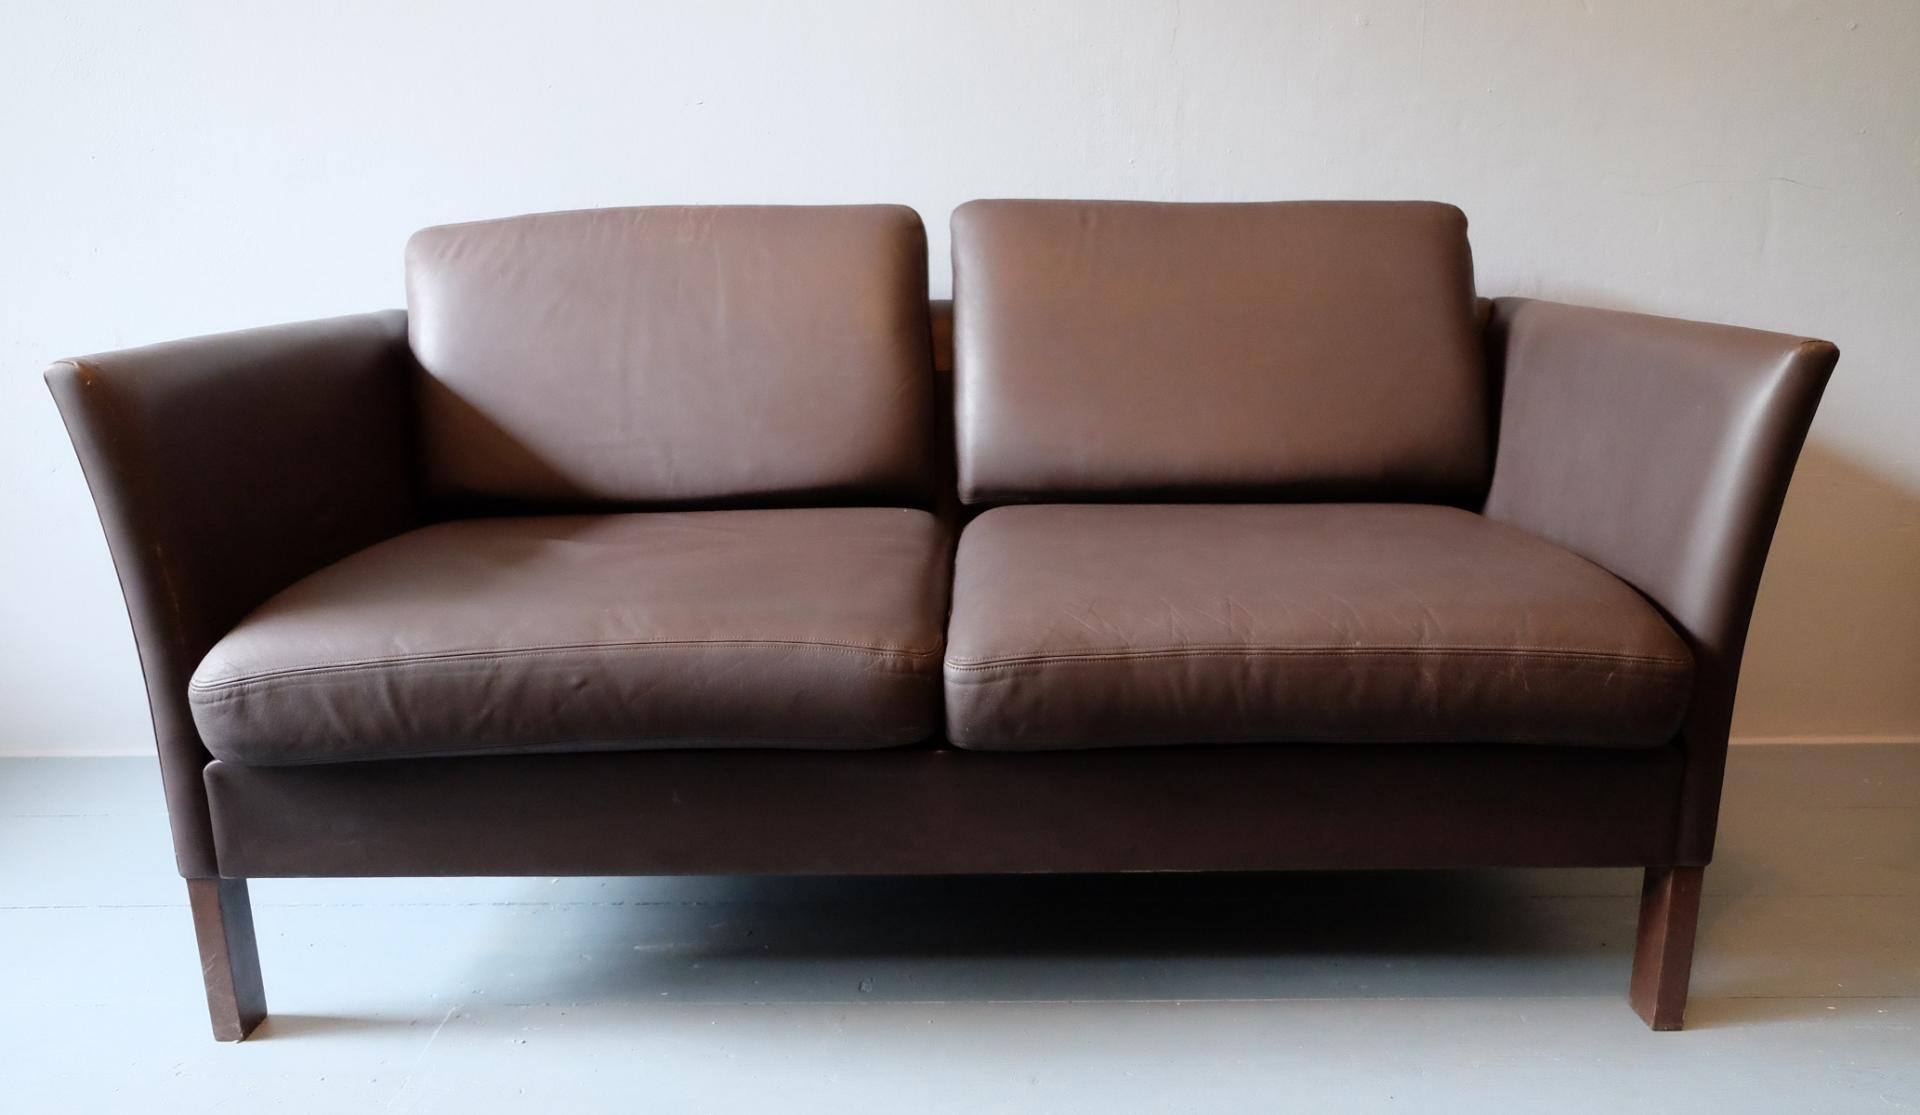 Danish Leather Sofa Loveseat, 1970S For Sale At Pamono Intended For Danish Leather Sofas (Image 3 of 20)